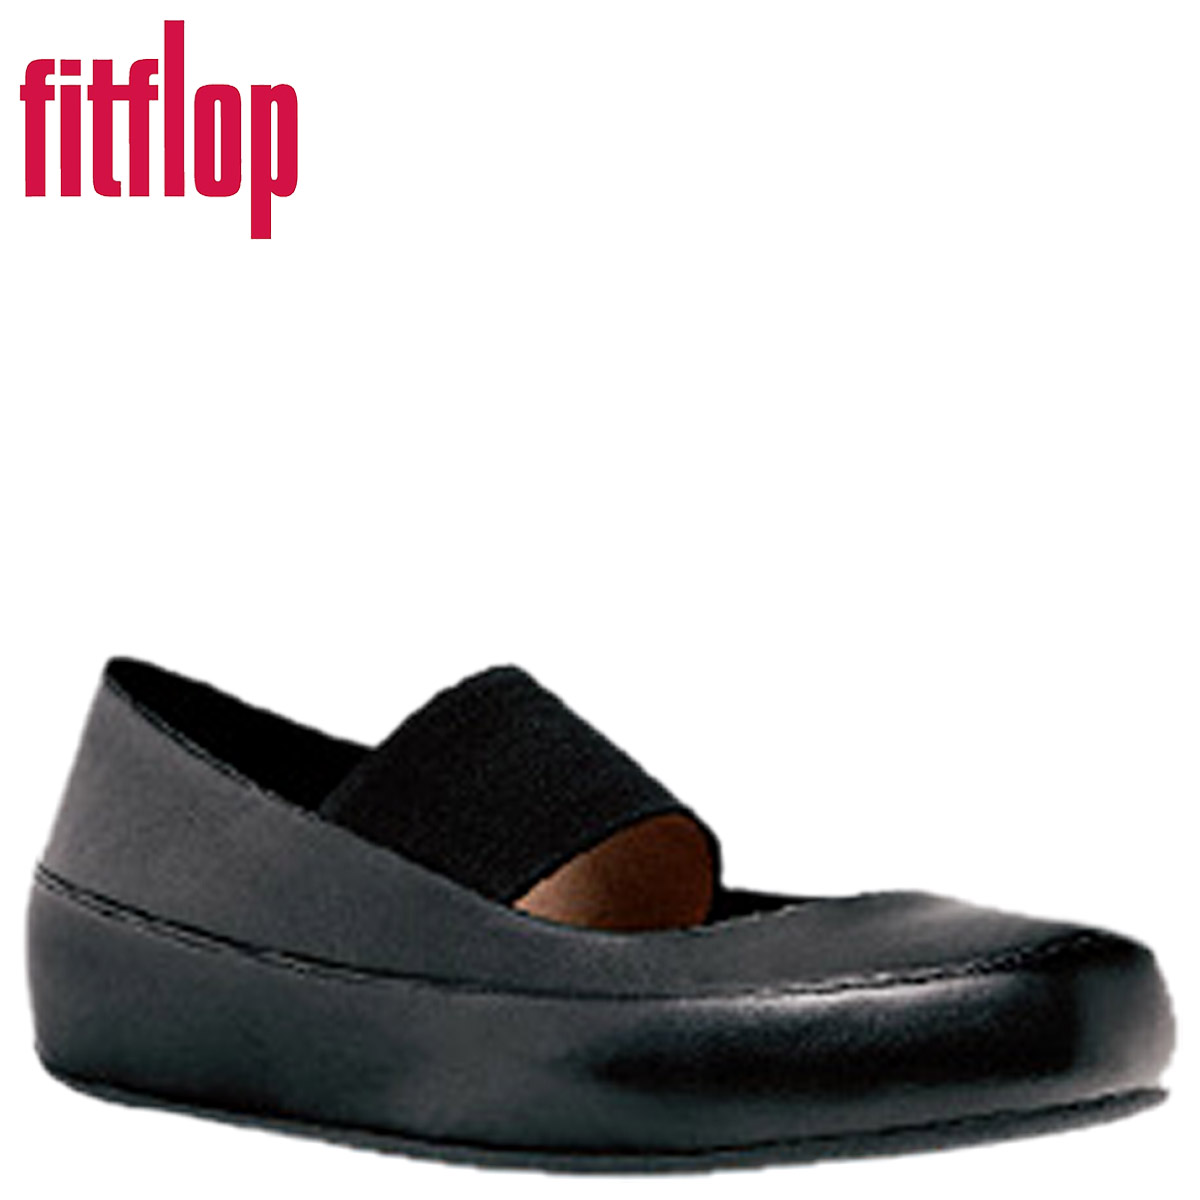 6be458841ab434 Whats up Sports  FitFlop fit flop DUE MARY JANE Hotel Mary Jane ...